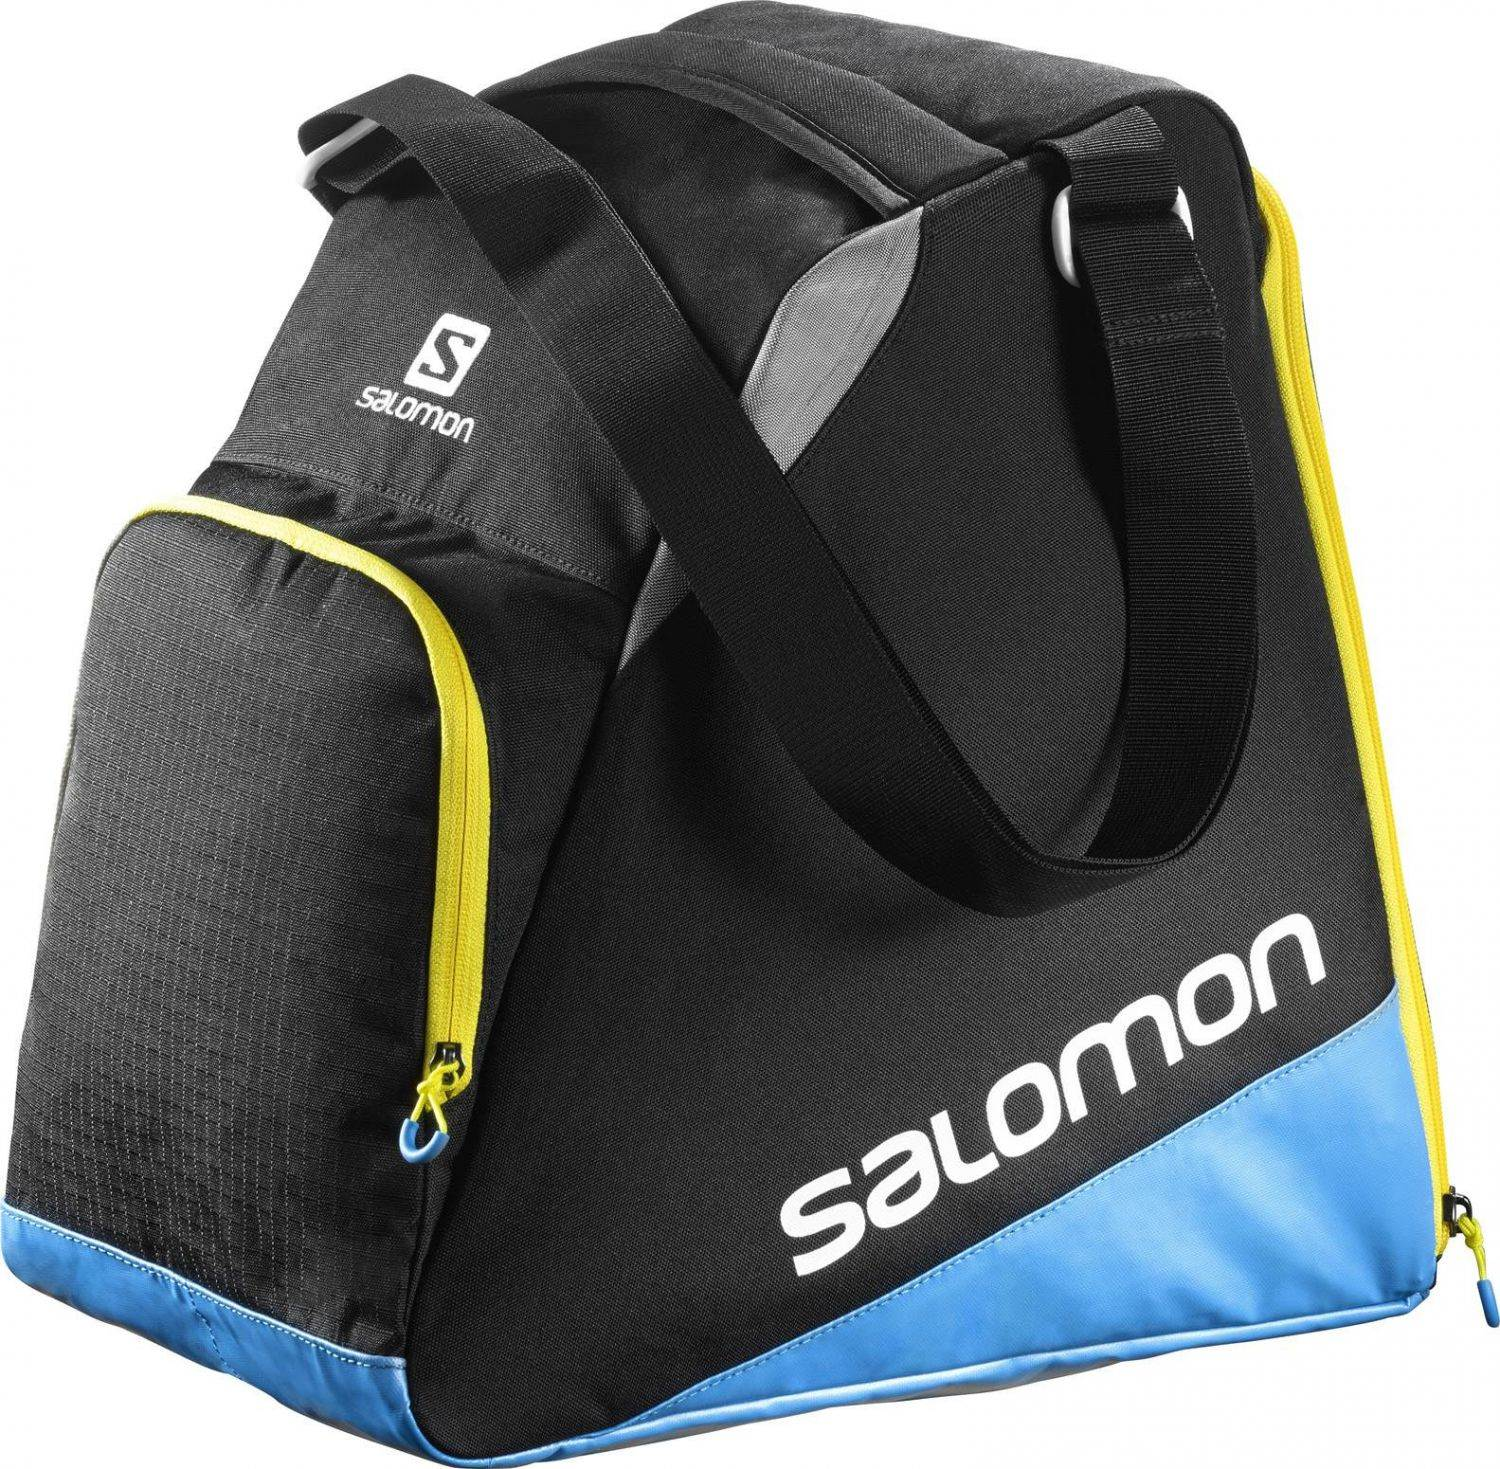 Salomon Extend Gearbag Skischuhtasche (Farbe: black/process blue/corona yellow)